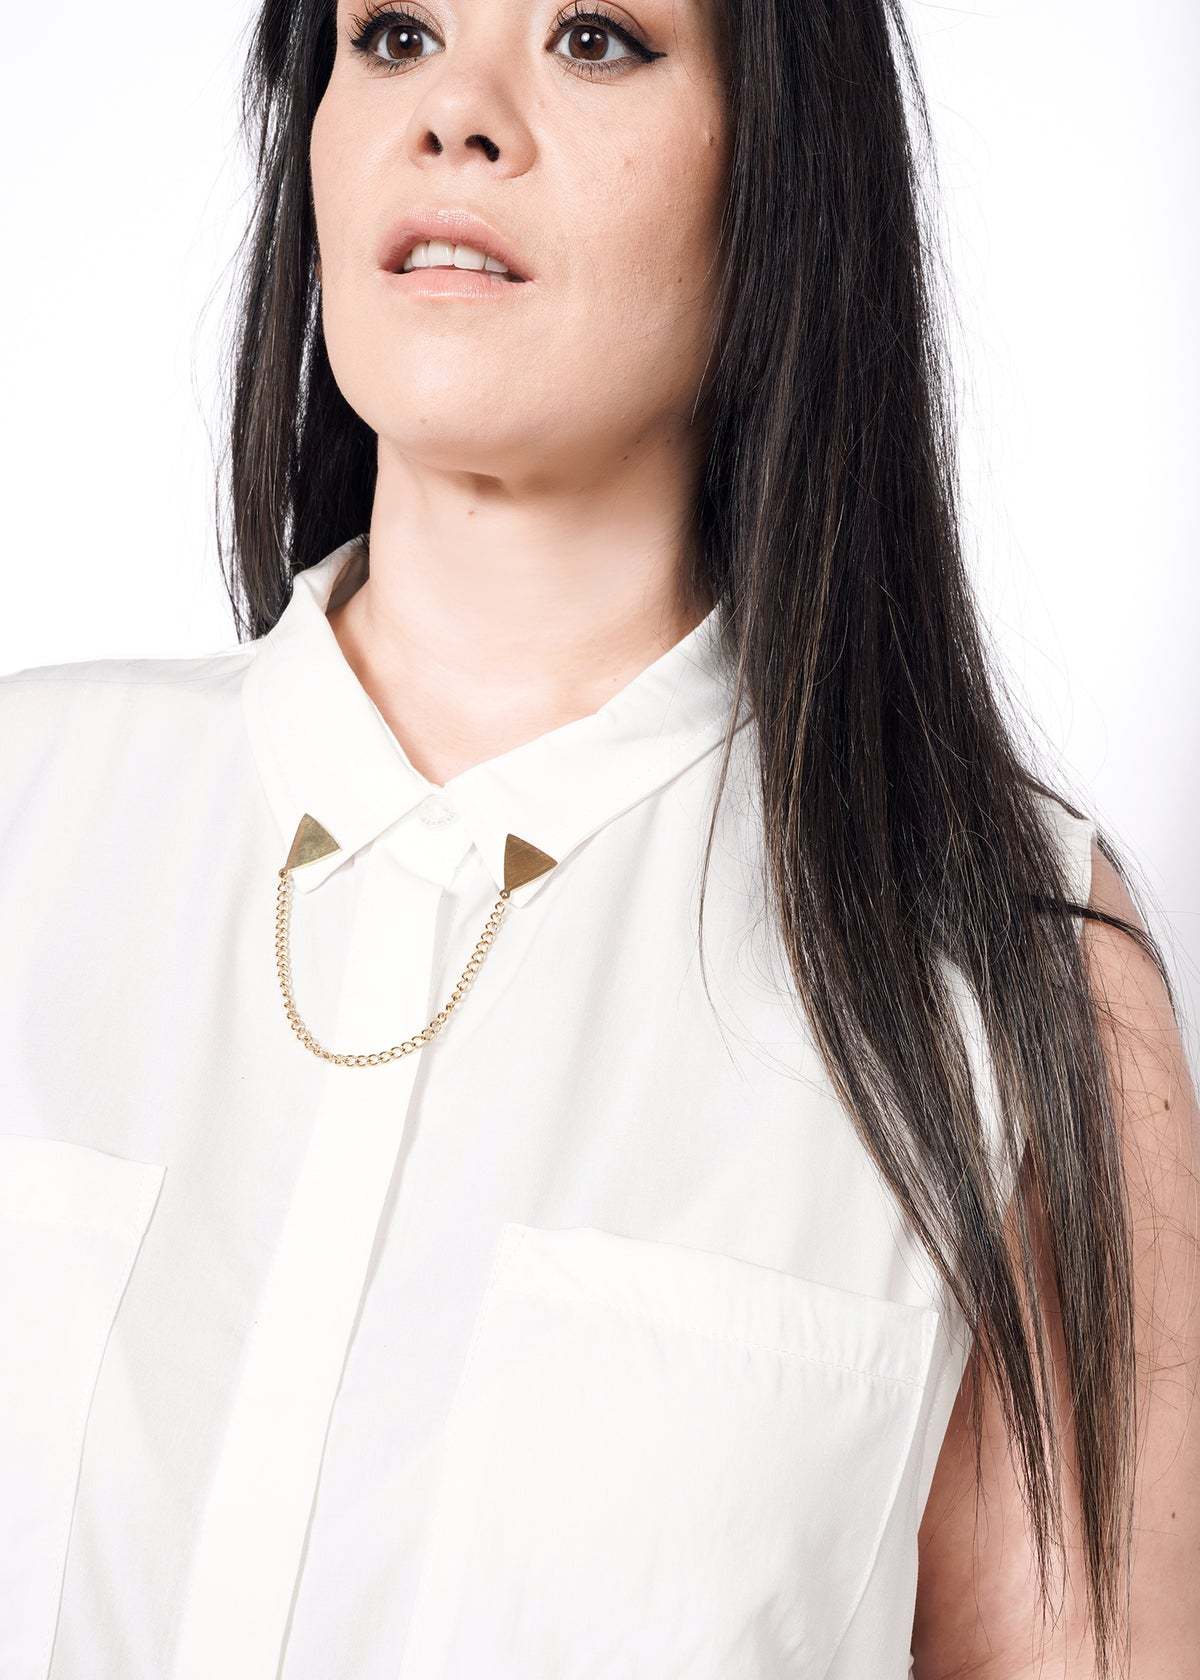 Model wearing white sleeveless drapey button up shirt in size XXL with metal collar tips accessory at collar